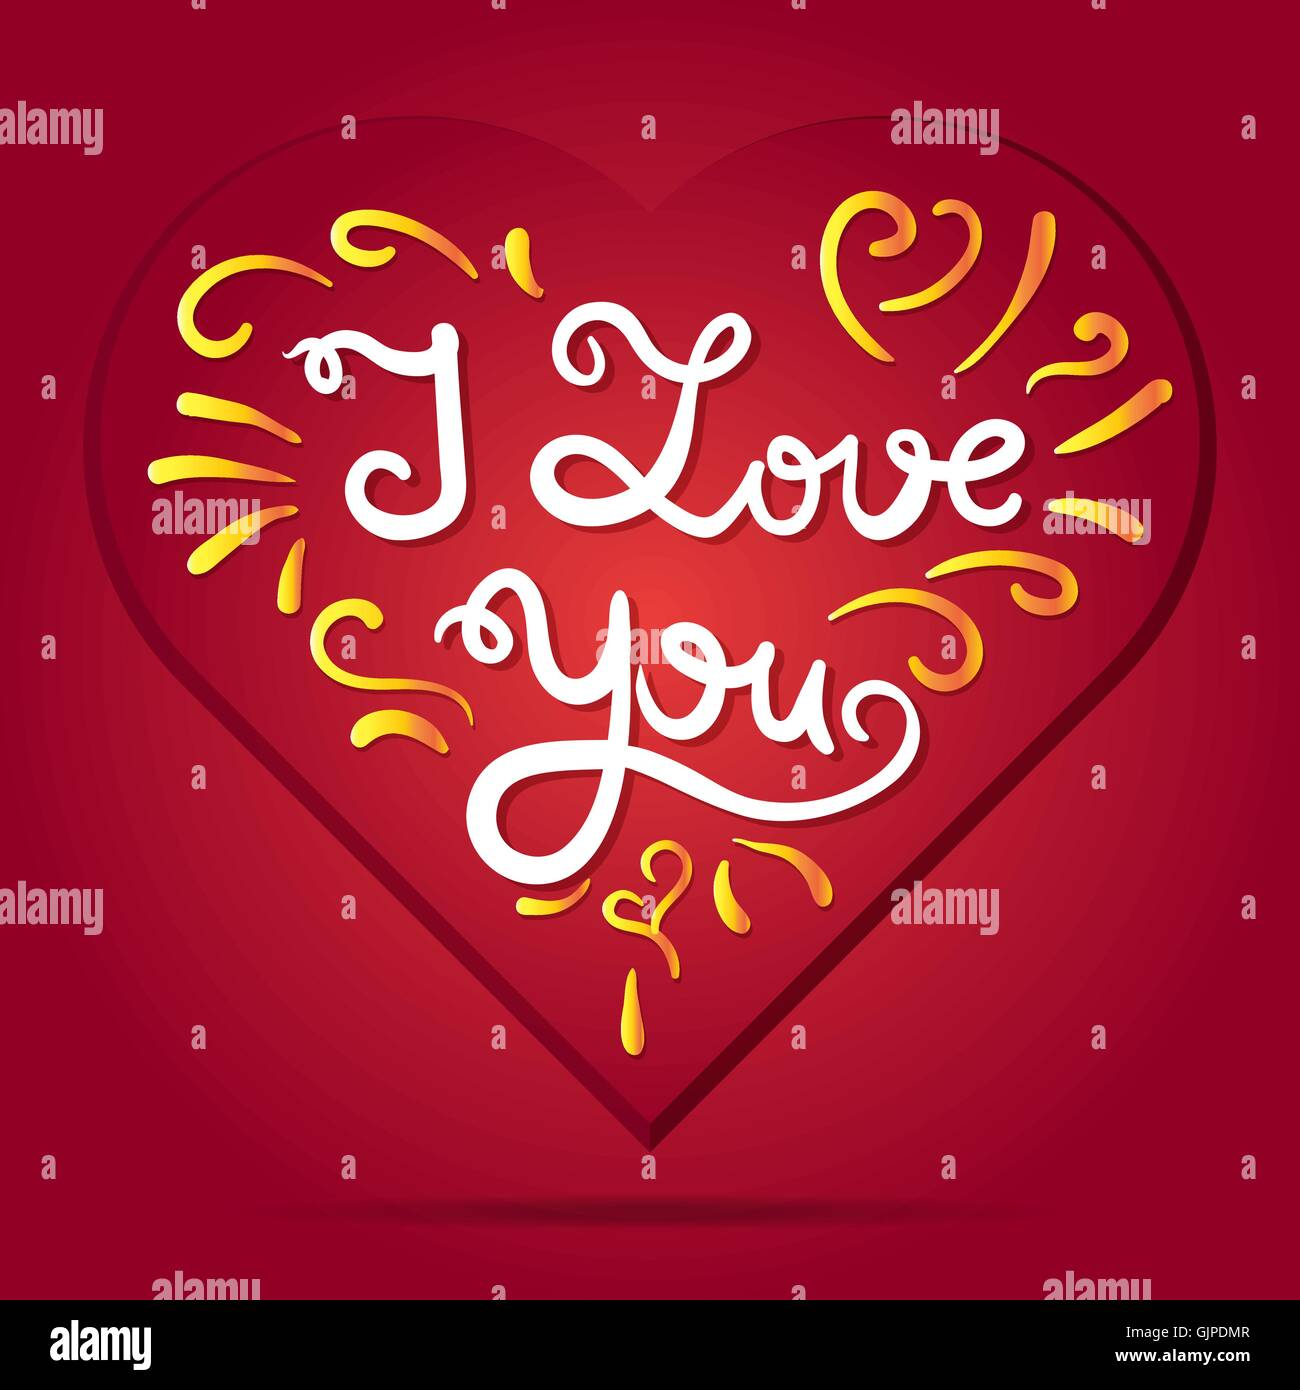 Lovely Valentines Day Calligraphy Poster Stock Photos Lovely